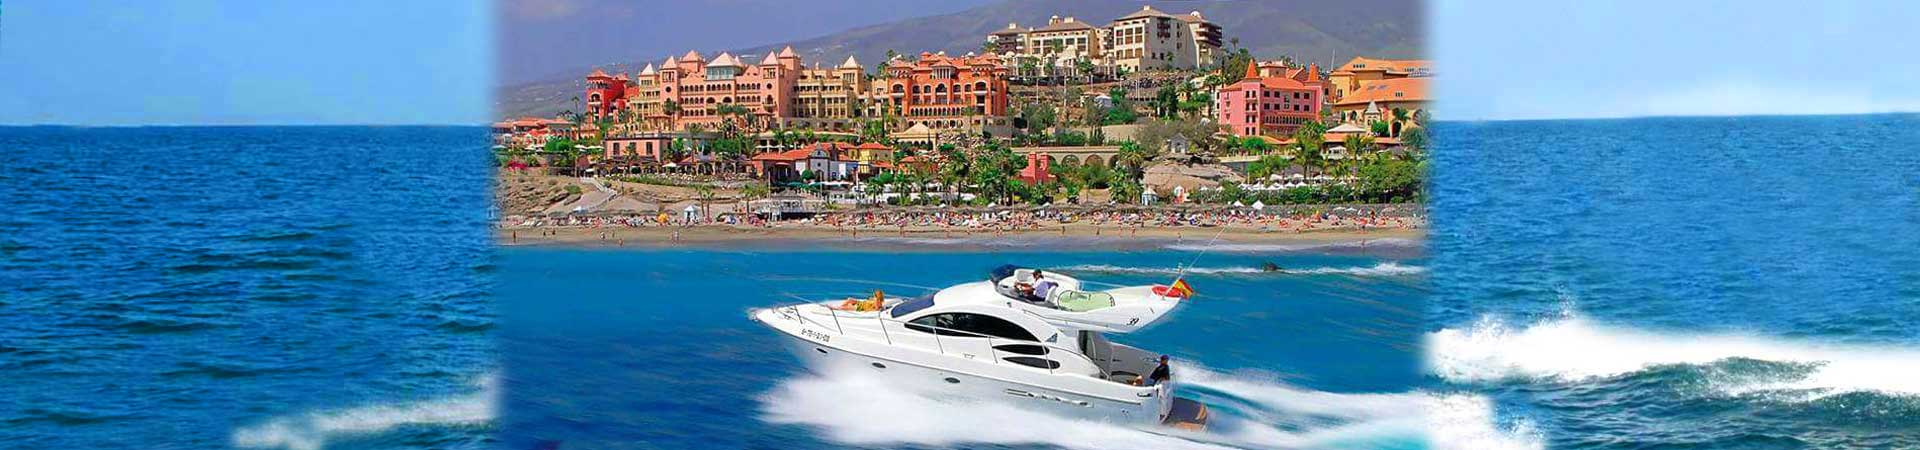 https://www.goodmorningtenerife.com/wp-content/uploads/2018/10/Poker-Yacht-Charter-Tenerife-slide-good-morning-tenerife.jpg